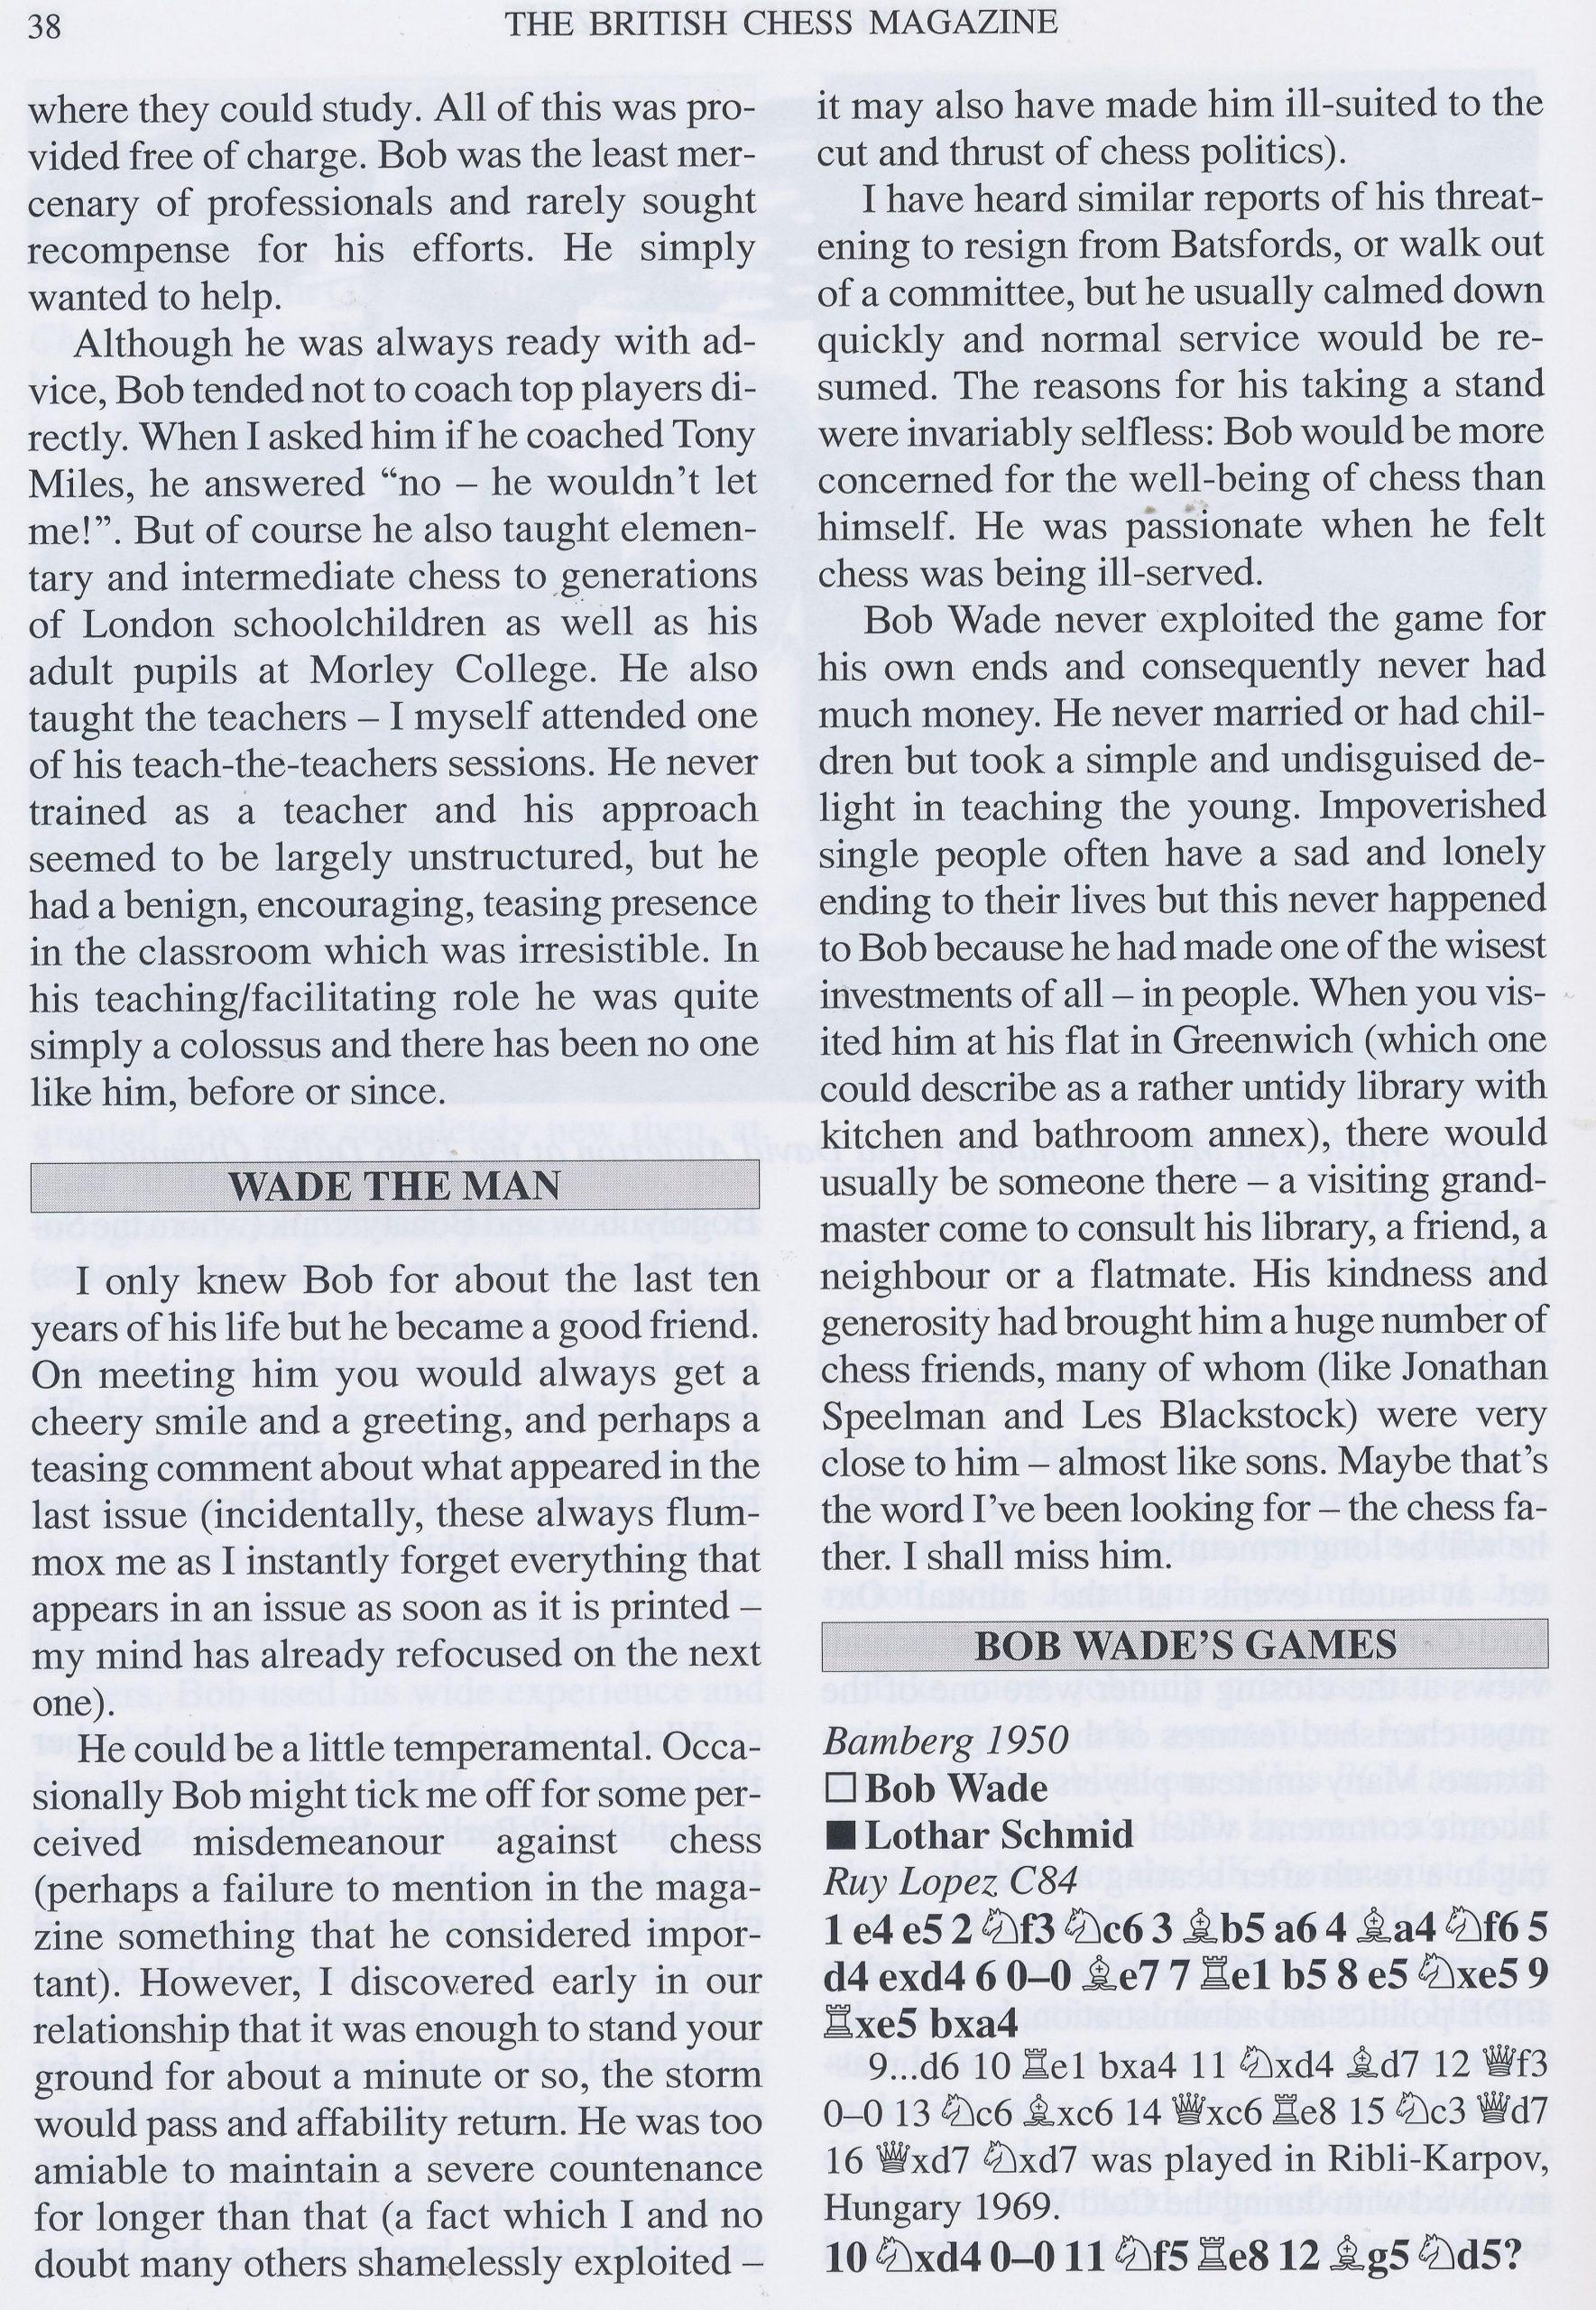 British Chess Magazine, Volume CXXIX (129, 2009), #1 (January), pp. 34-43